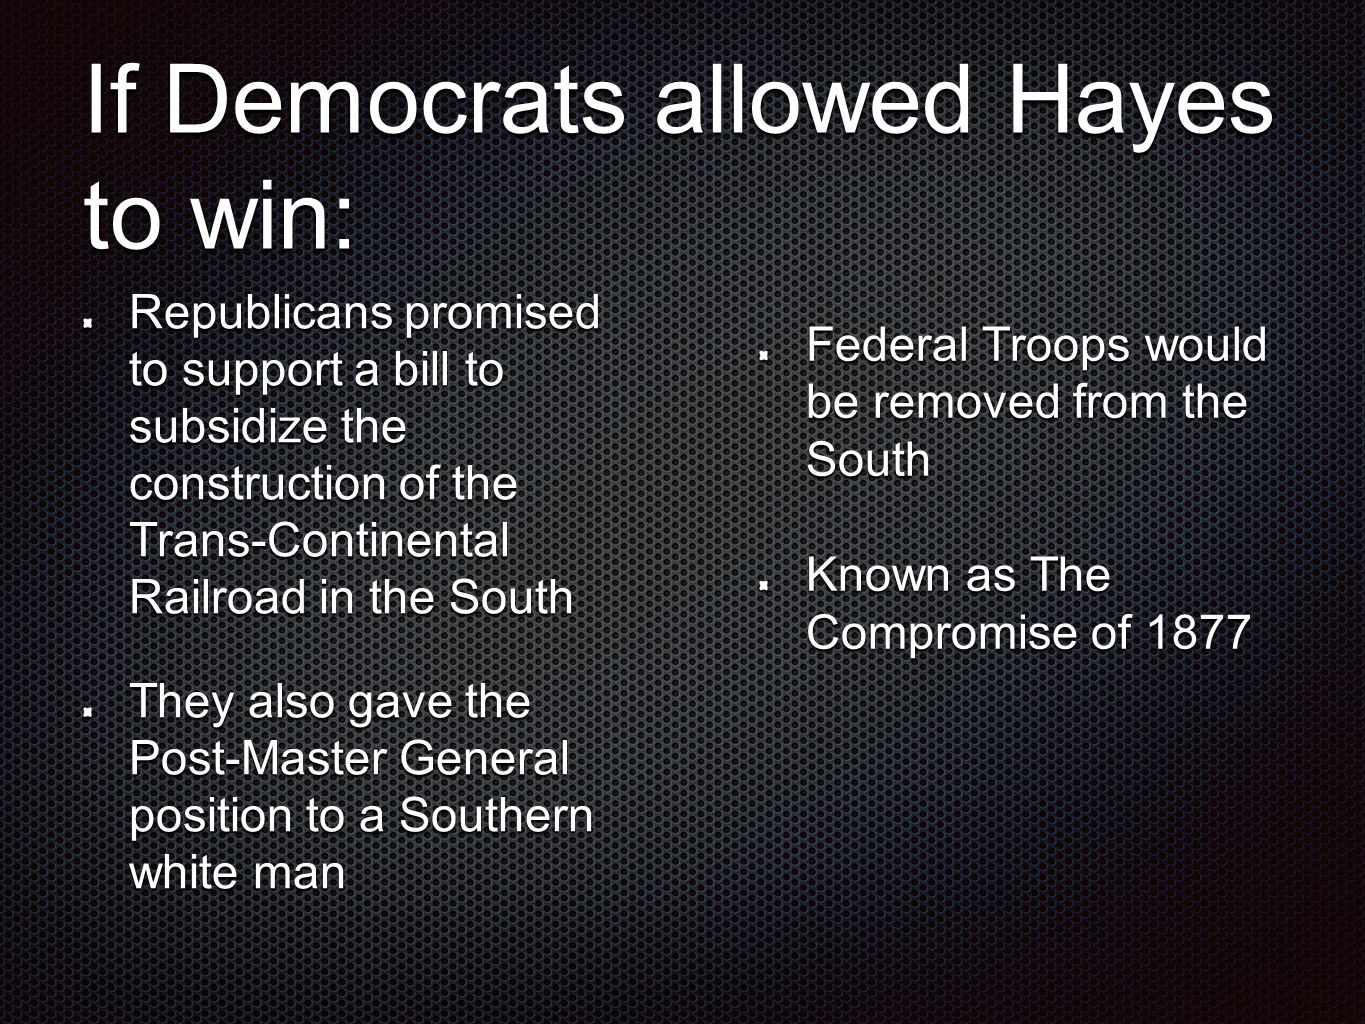 If Democrats allowed Hayes to win: Republicans promised to support a bill to subsidize the construction of the Trans-Continental Railroad in the South They also gave the Post-Master General position to a Southern white man Federal Troops would be removed from the South Known as The Compromise of 1877